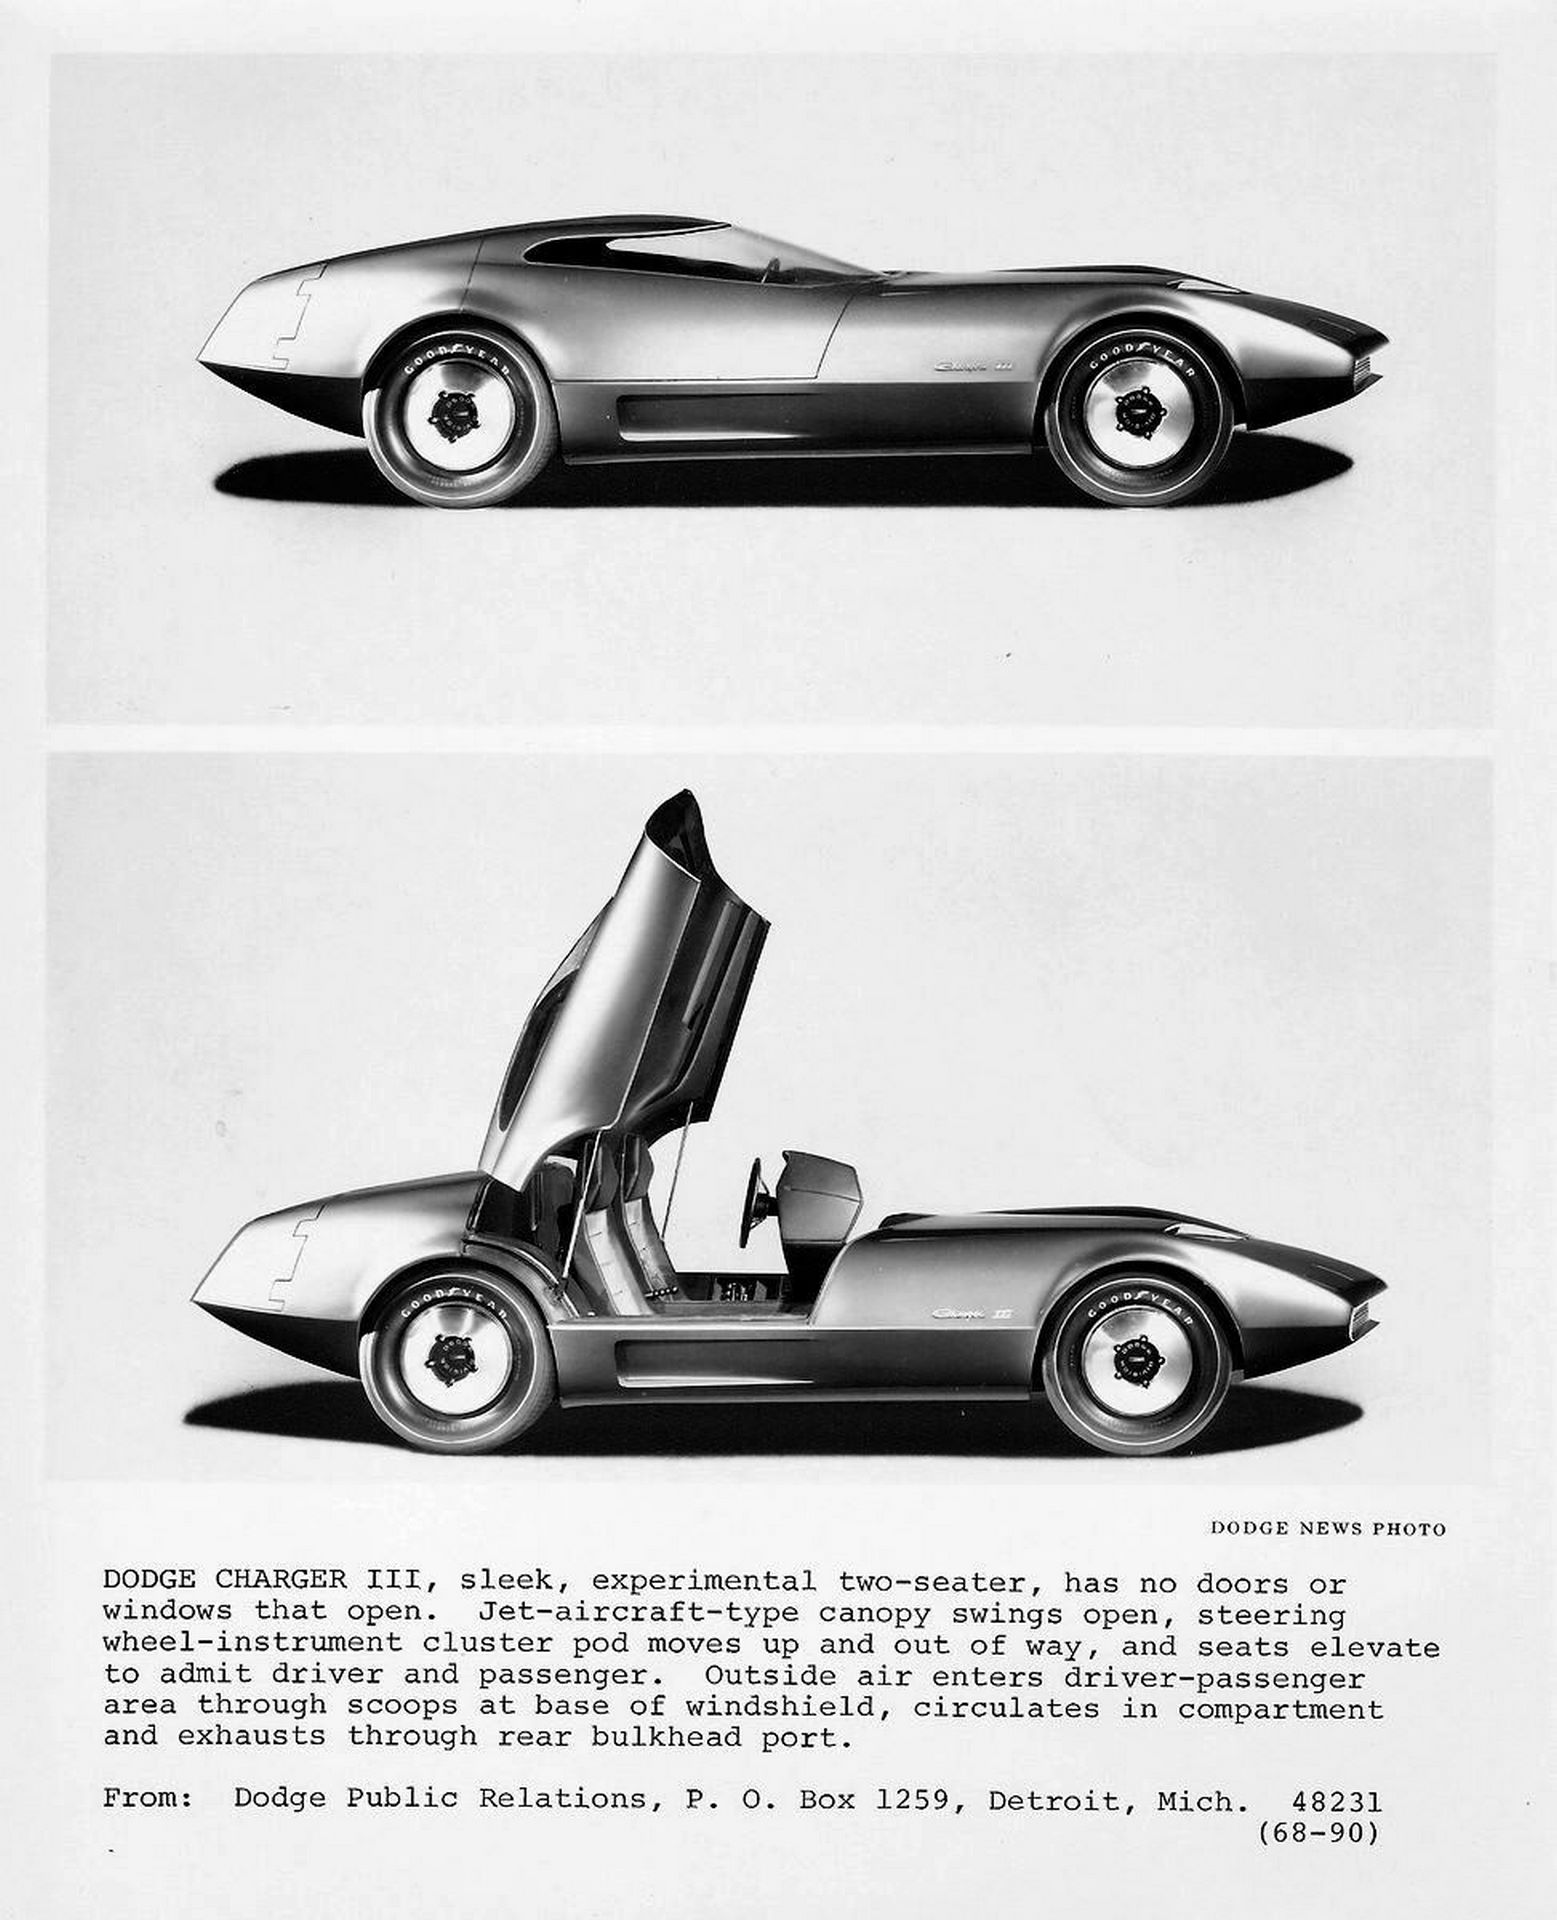 Dodge-Charger-III-concept-9